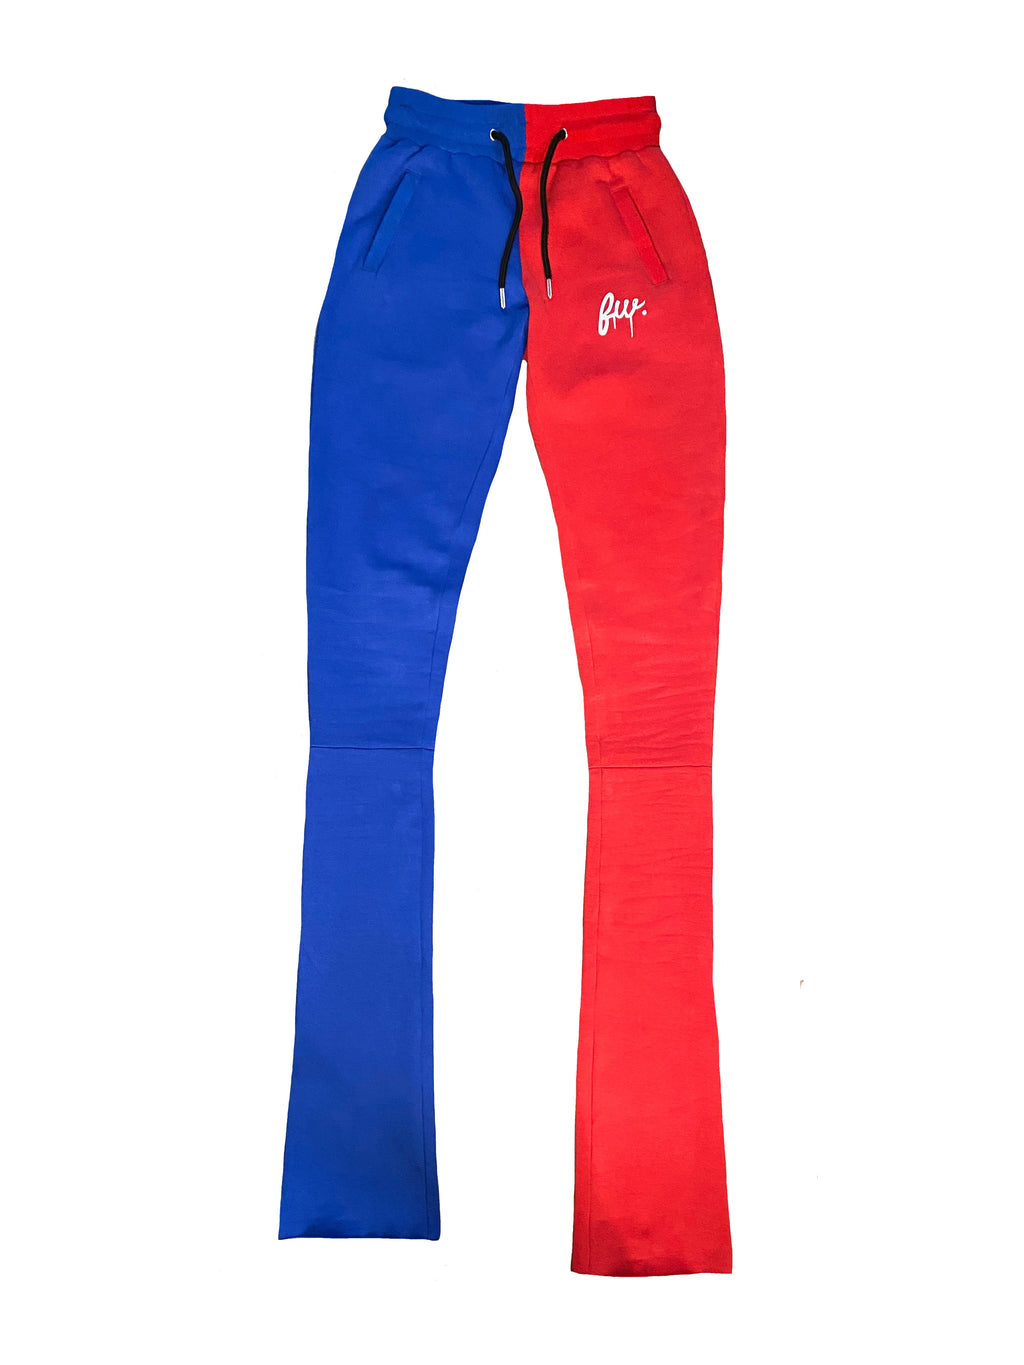 Blue/Red Split Sweatpants